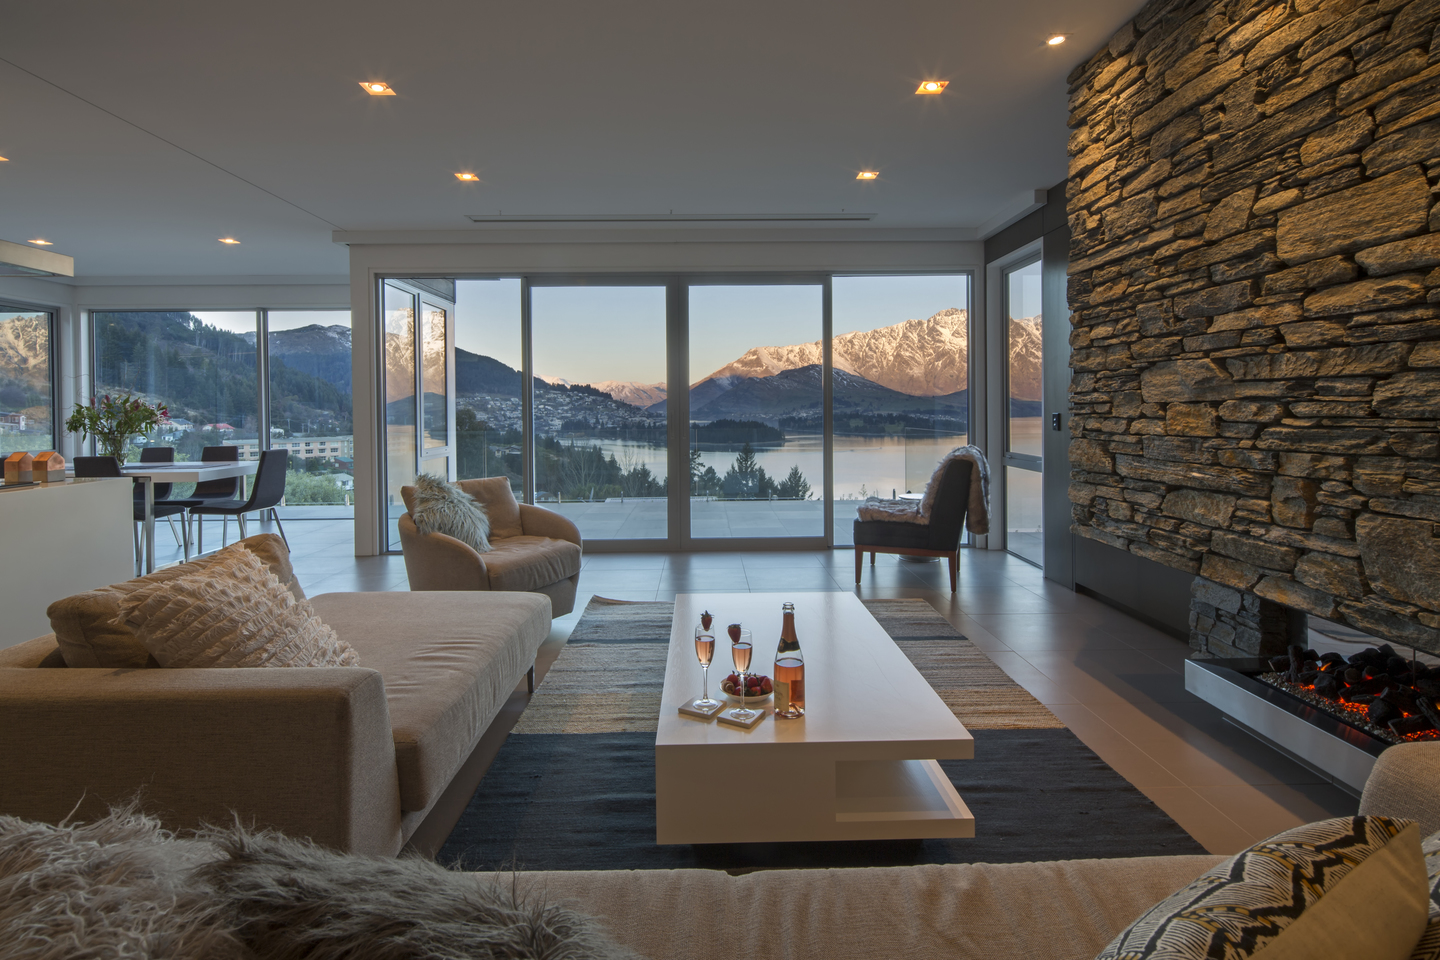 Mabey Ski_New Zealand_Queenstown_Touch of Spice_The Views 11.jpg